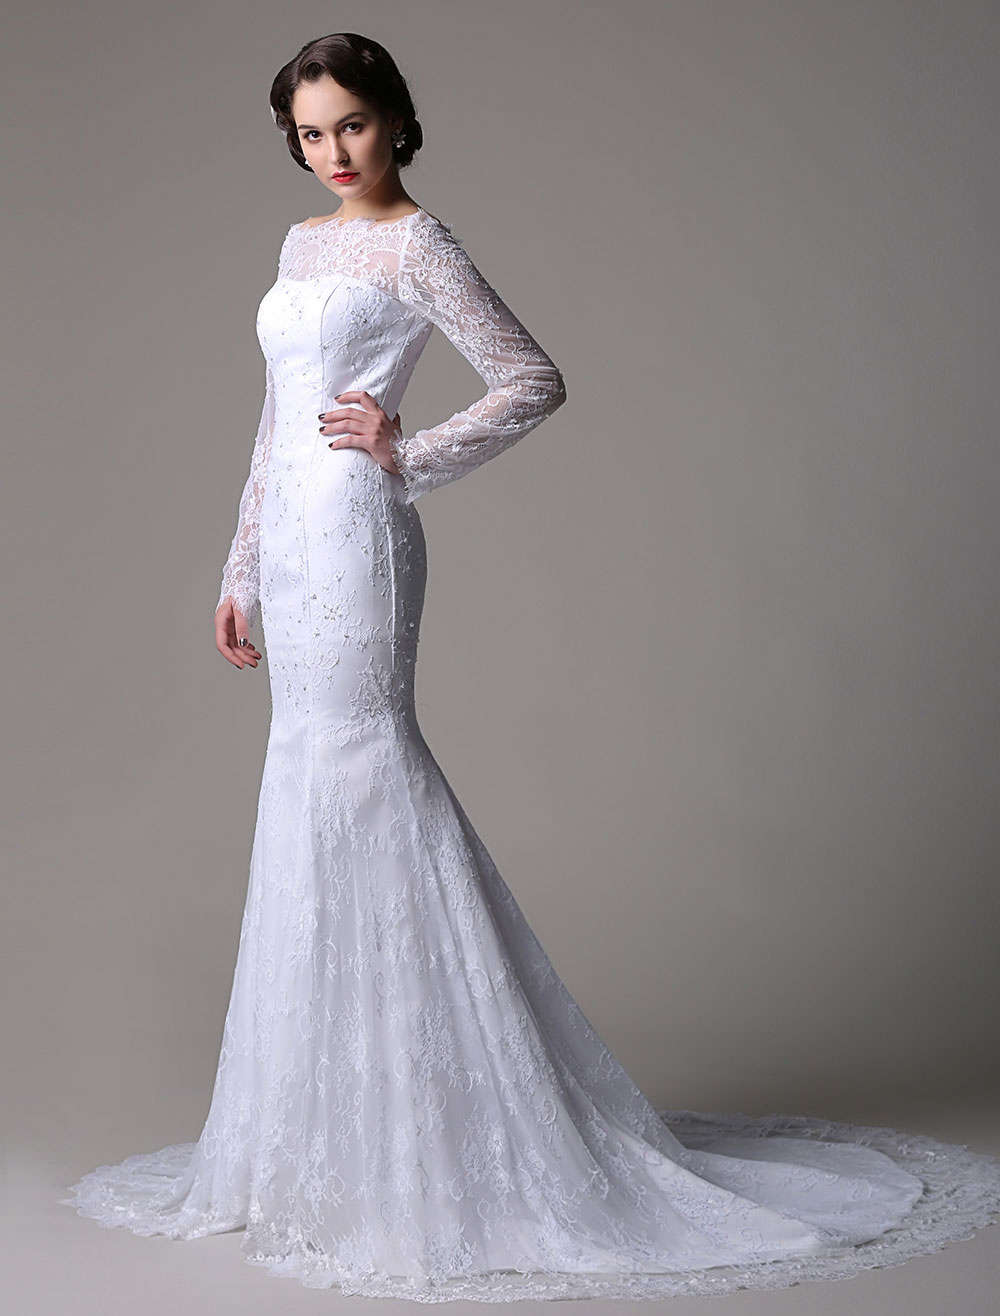 Lace Mermaid/Trumpet  Long Sleeves Off-the-shoulder Wedding Dress